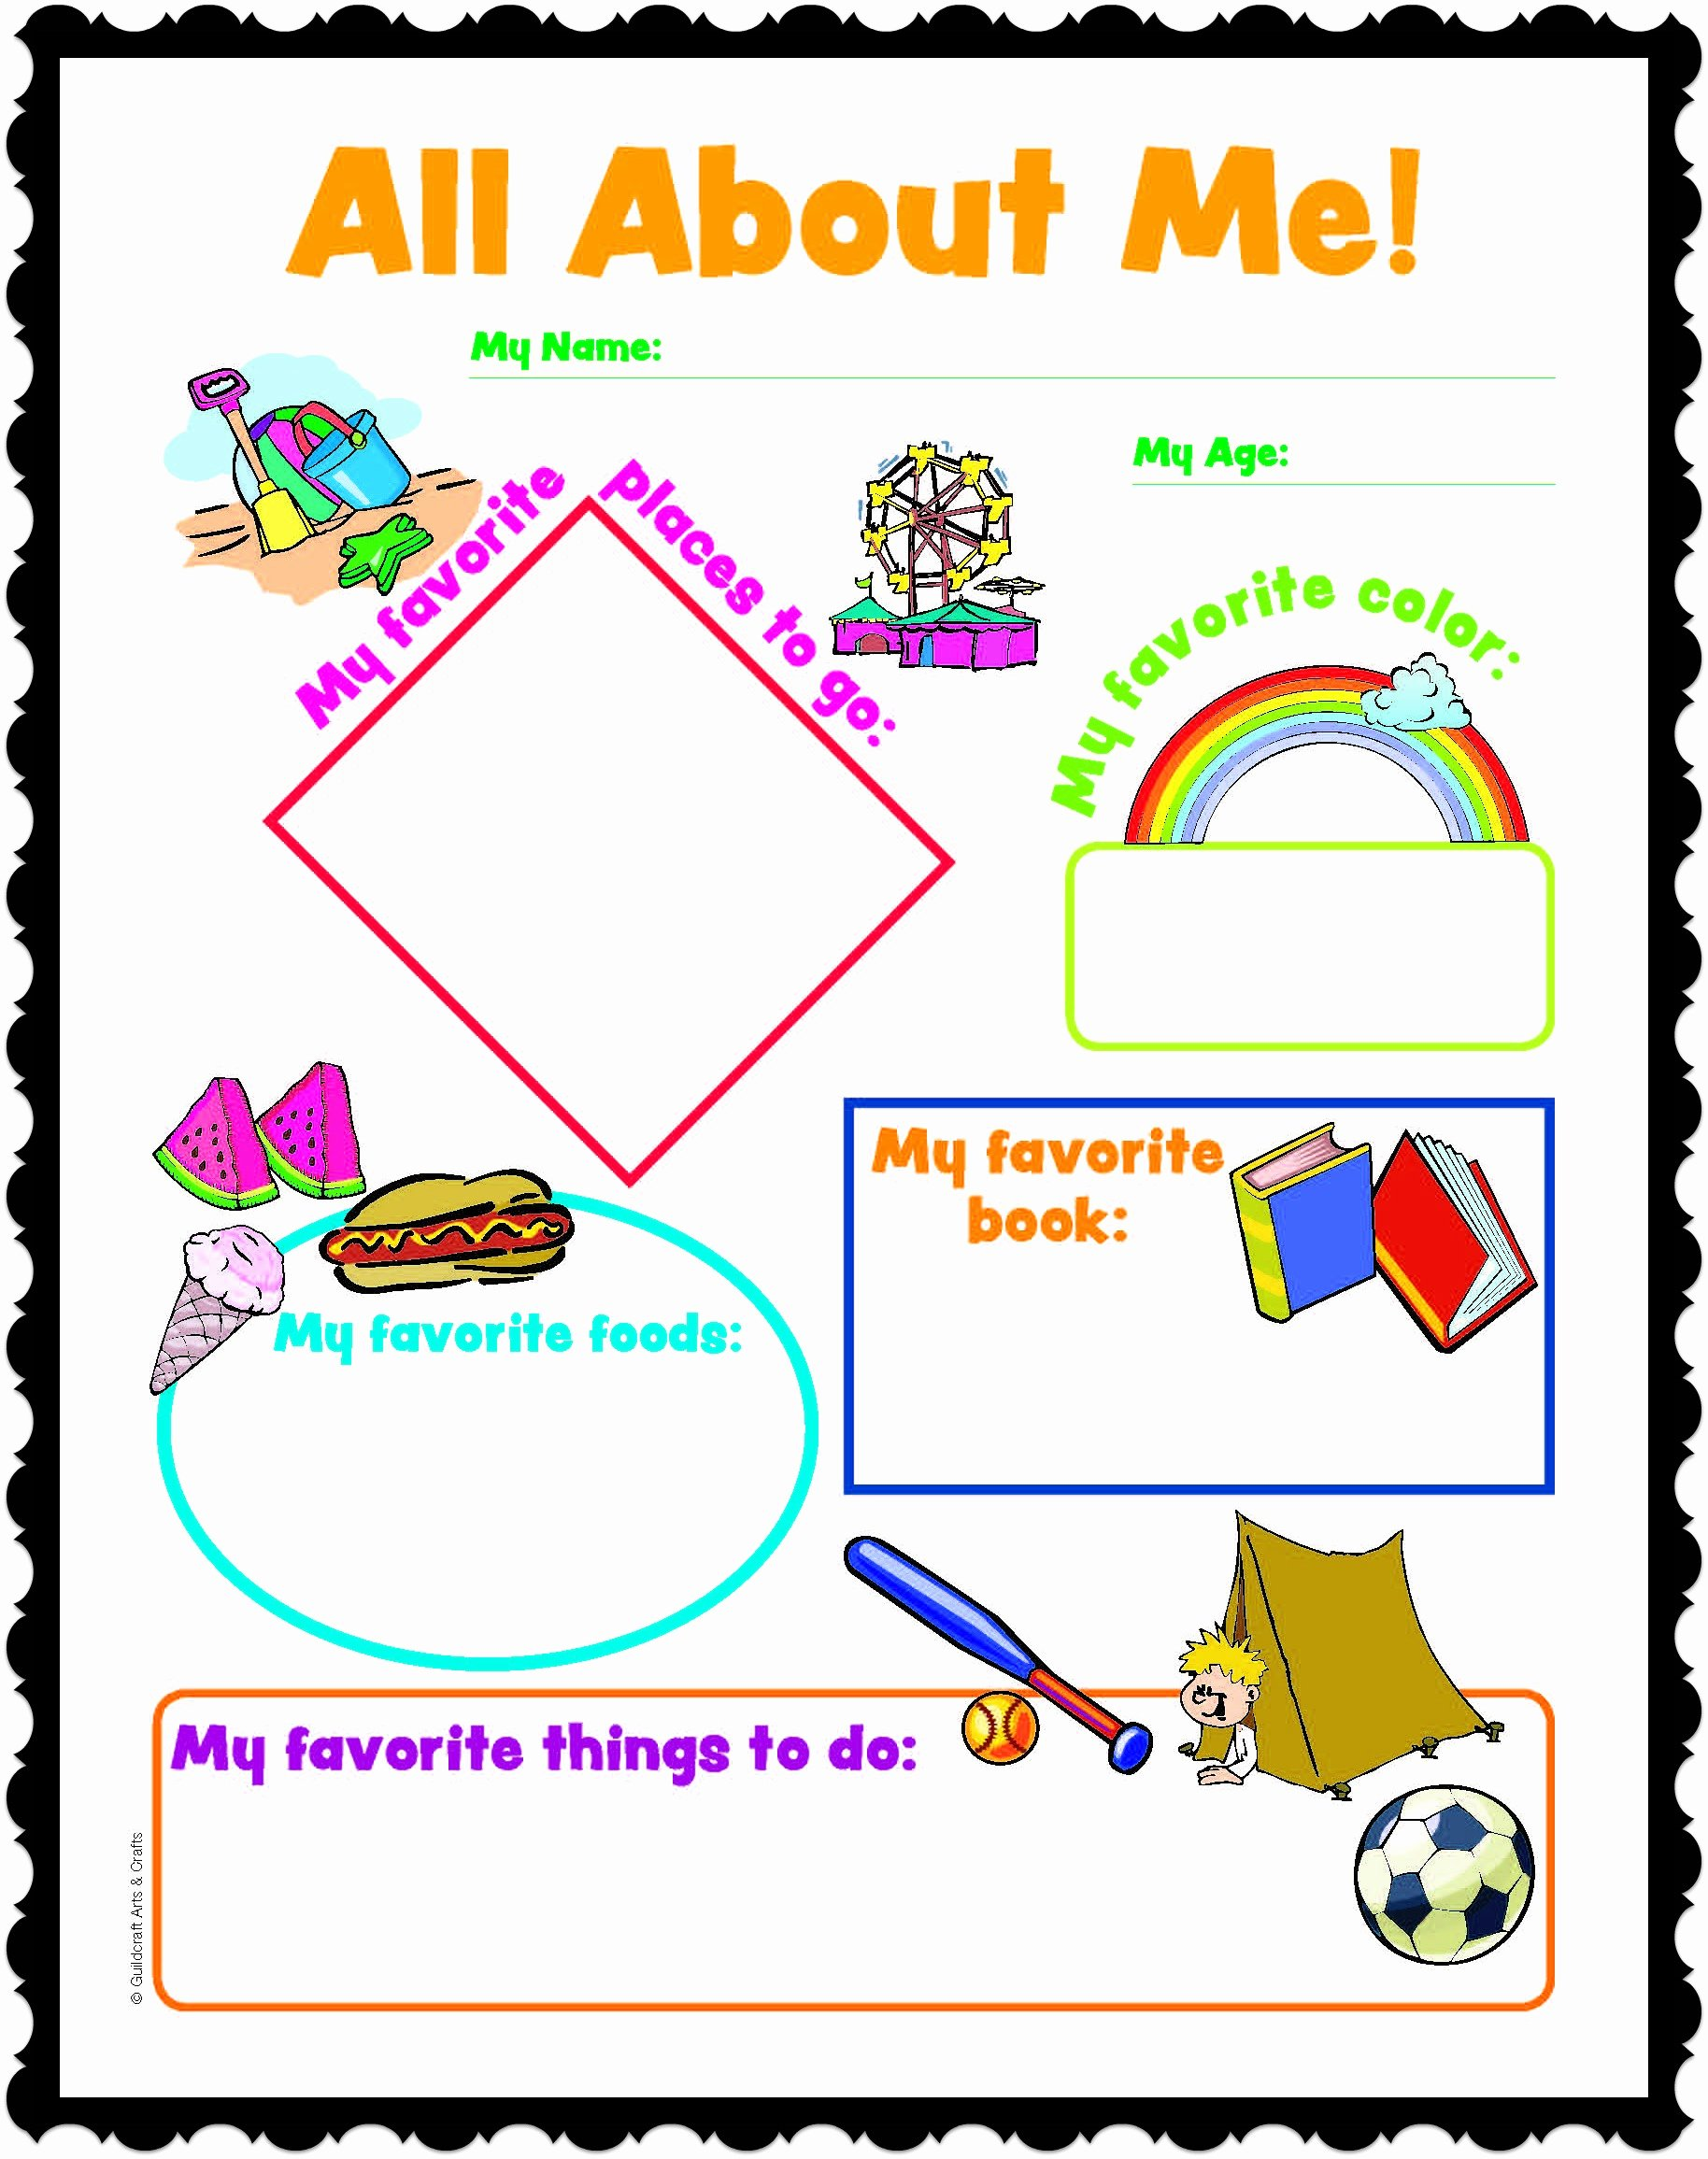 All About Me Worksheet Lovely All About Me Worksheetstake the Pen